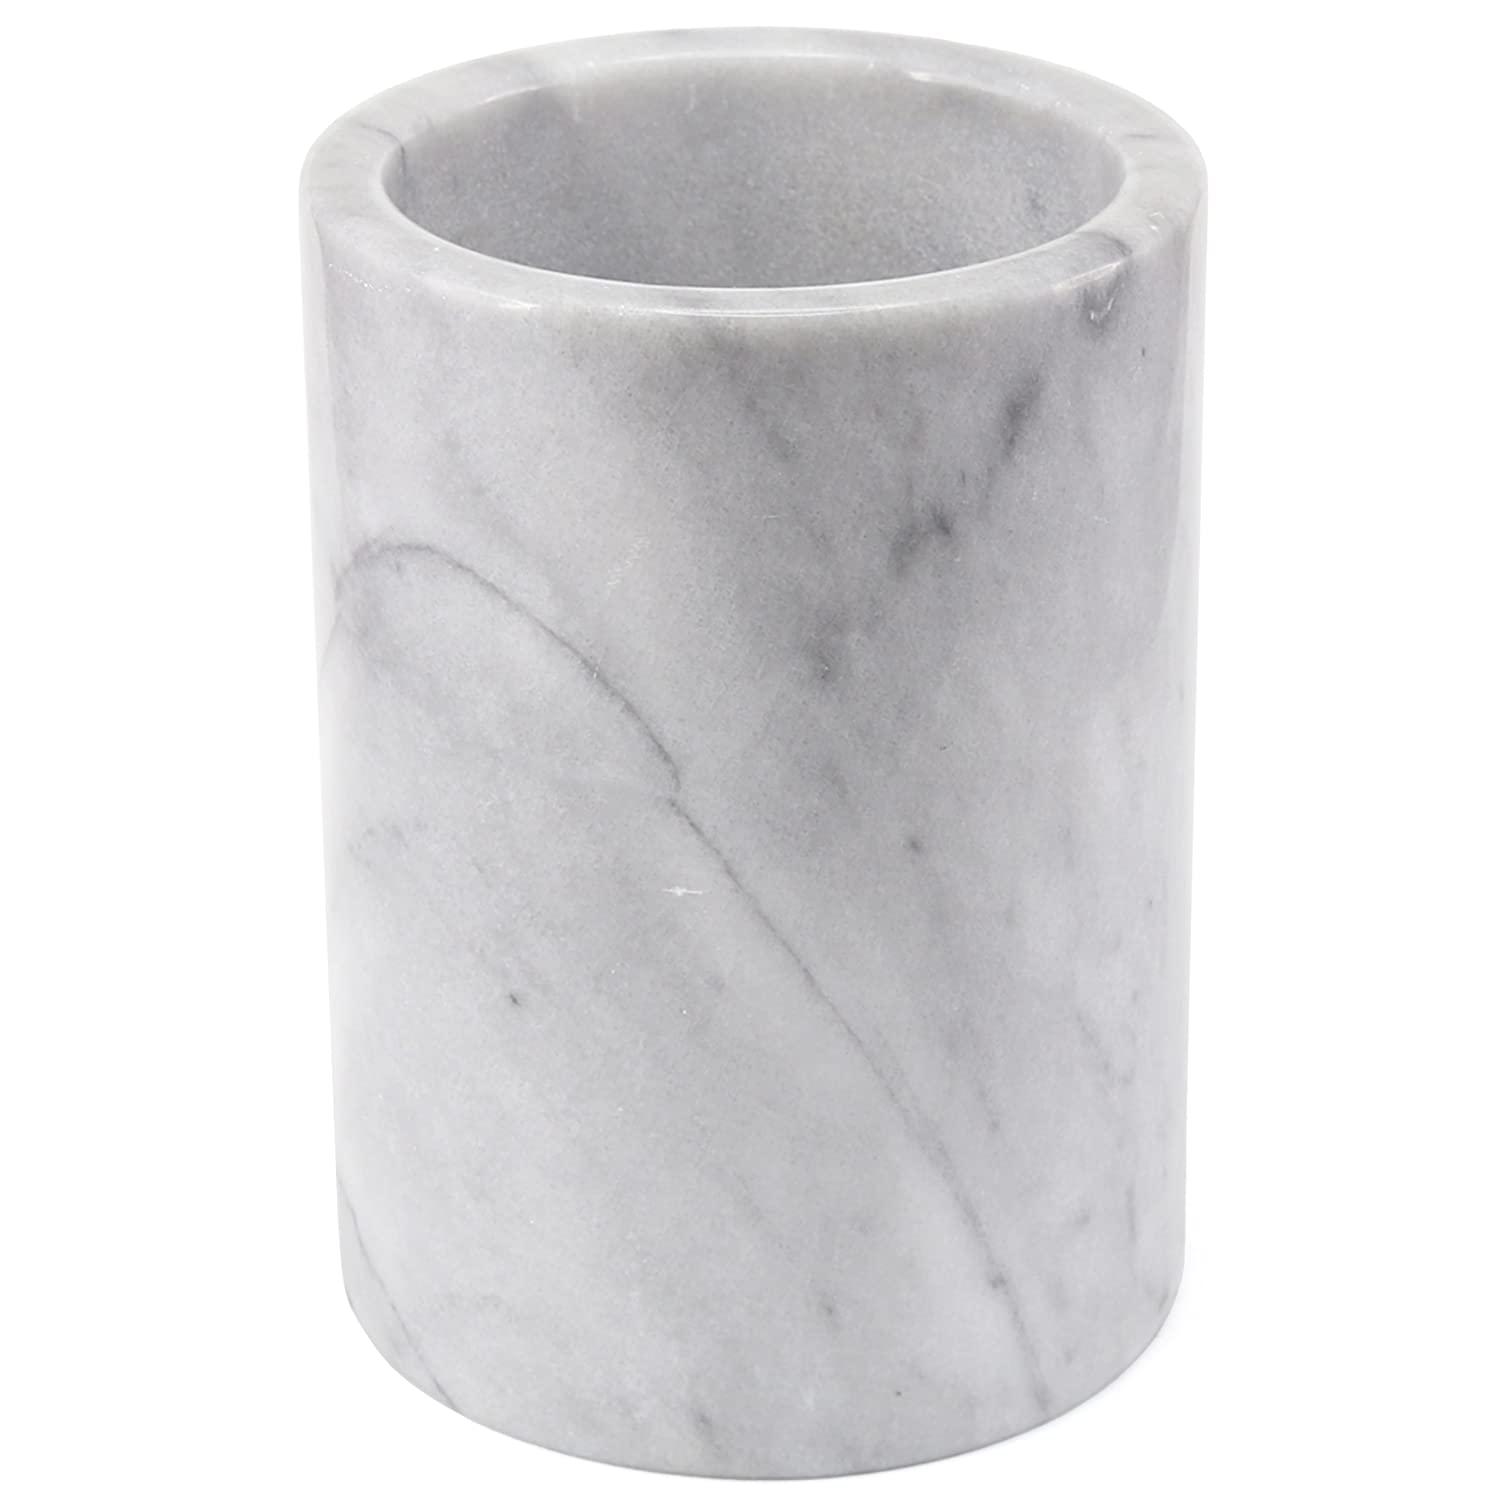 "Creative Home 84046 Natural Marble Tool Crock Utensil Holder 5"" Diam. x 7"" H White"